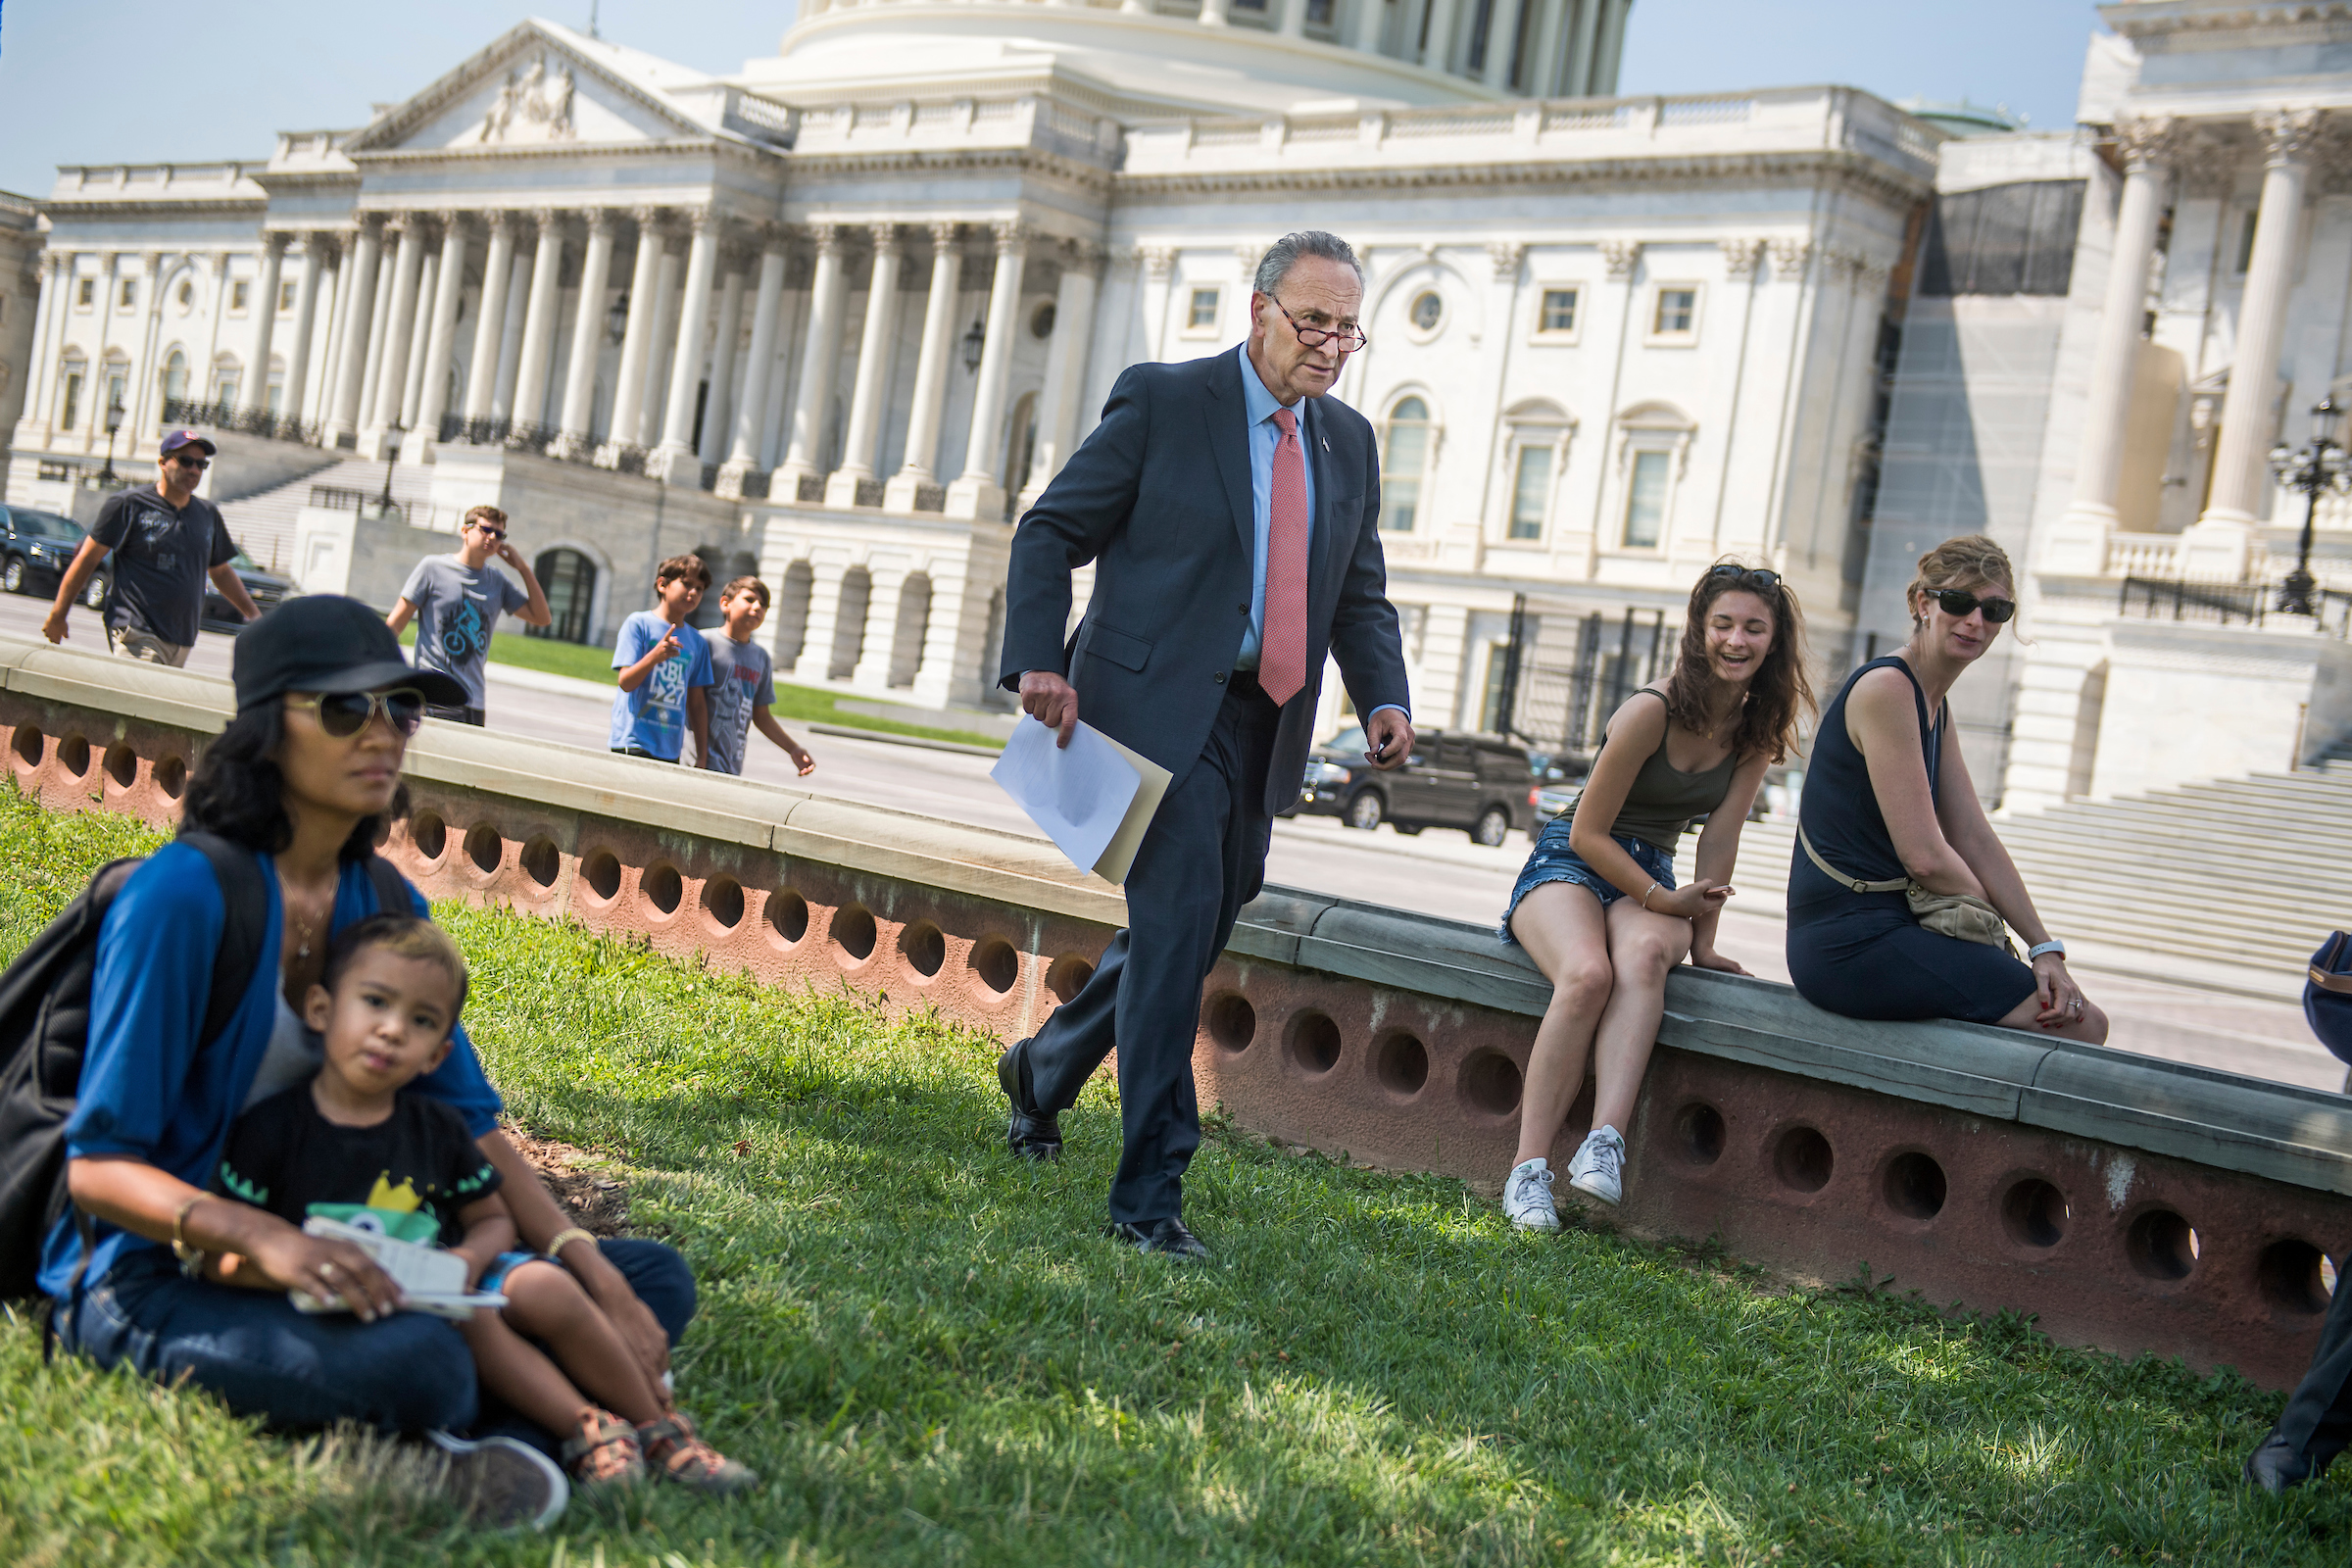 "UNITED STATES - AUGUST 02: Senate Minority Leader Charles Schumer, D-N.Y., returns after a phone call to a news conference on the east lawn of the Capitol to unveil a new economic agenda titled ""A Better Deal on Trade and Jobs"" on August 2, 2017. (Photo By Tom Williams/CQ Roll Call)"